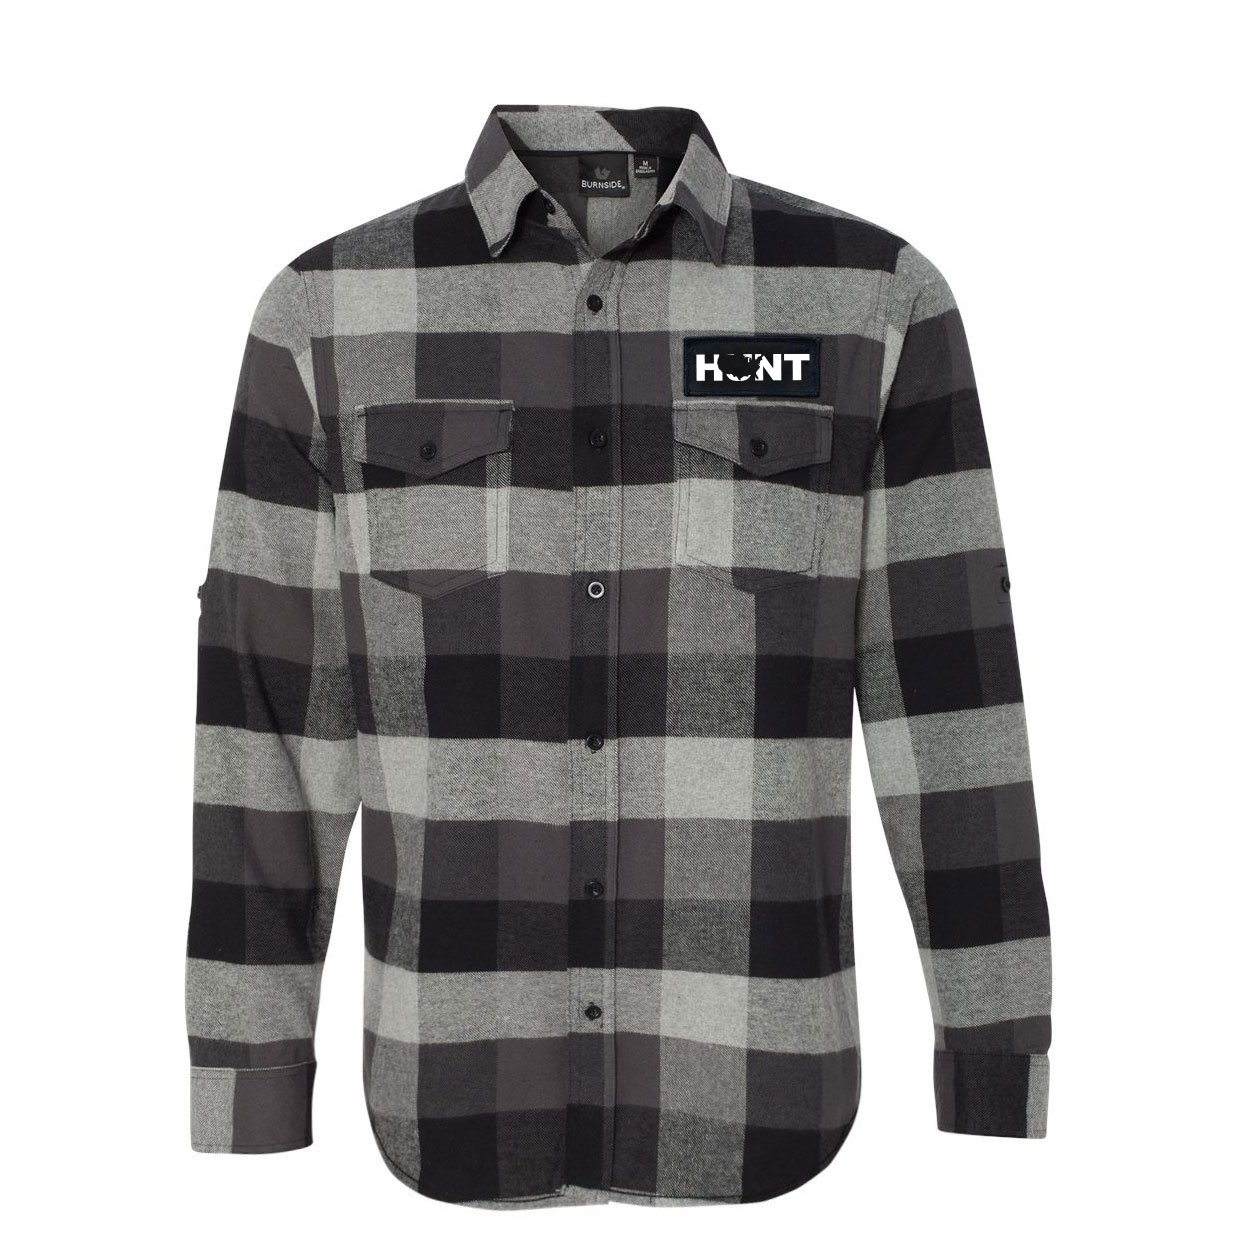 Hunt United States Classic Unisex Long Sleeve Woven Patch Flannel Shirt Black/Gray (White Logo)